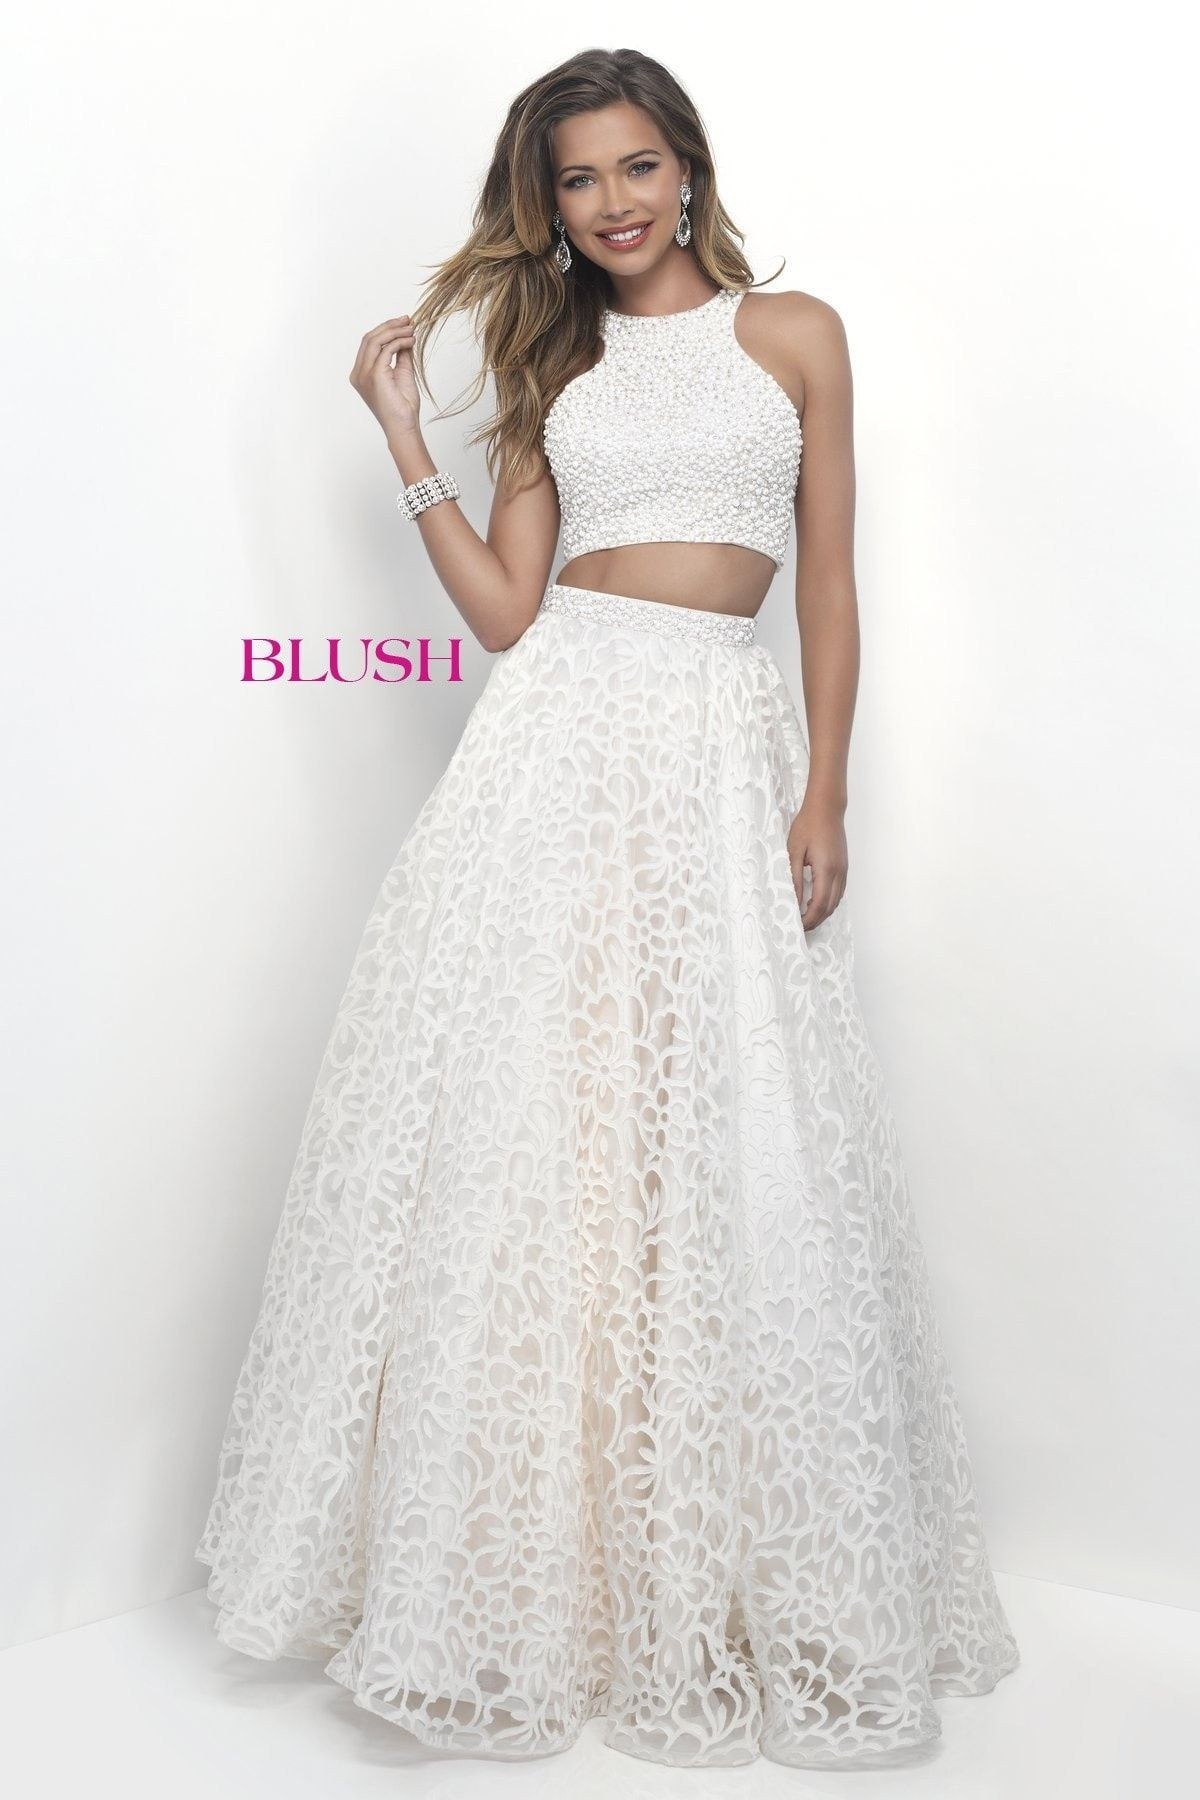 f9932521194d Pink by Blush 5600 Cream Open Back Two-Piece Prom Dress | Prom ...